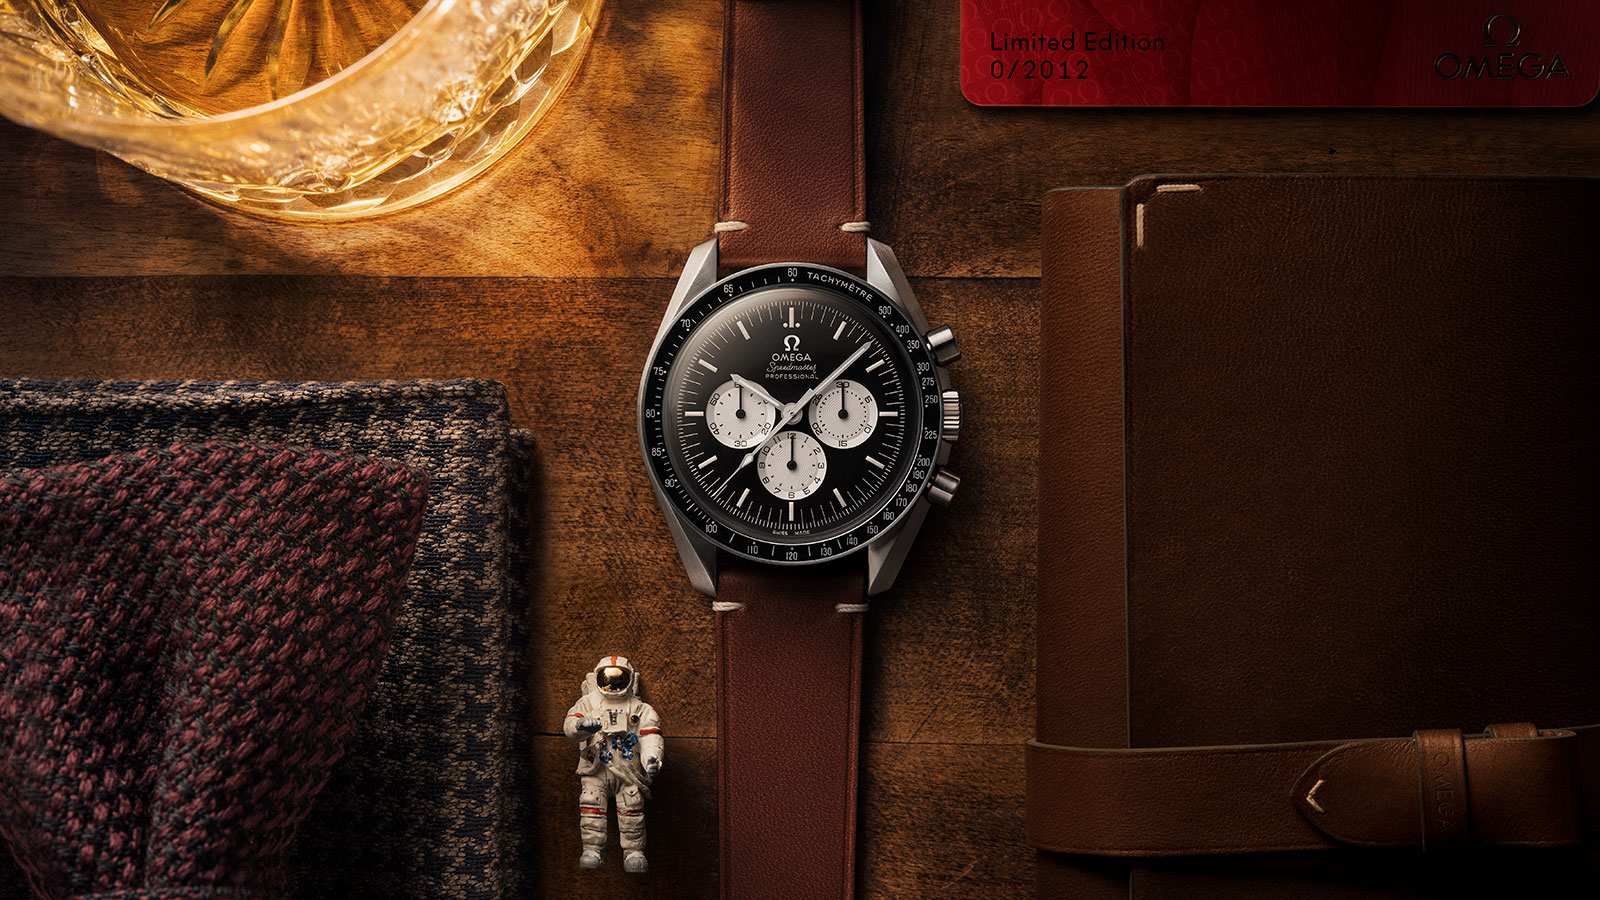 Speedmaster Moonwatch Moonwatch Anniversary Limited Series Orologio - 311.32.42.30.01.001